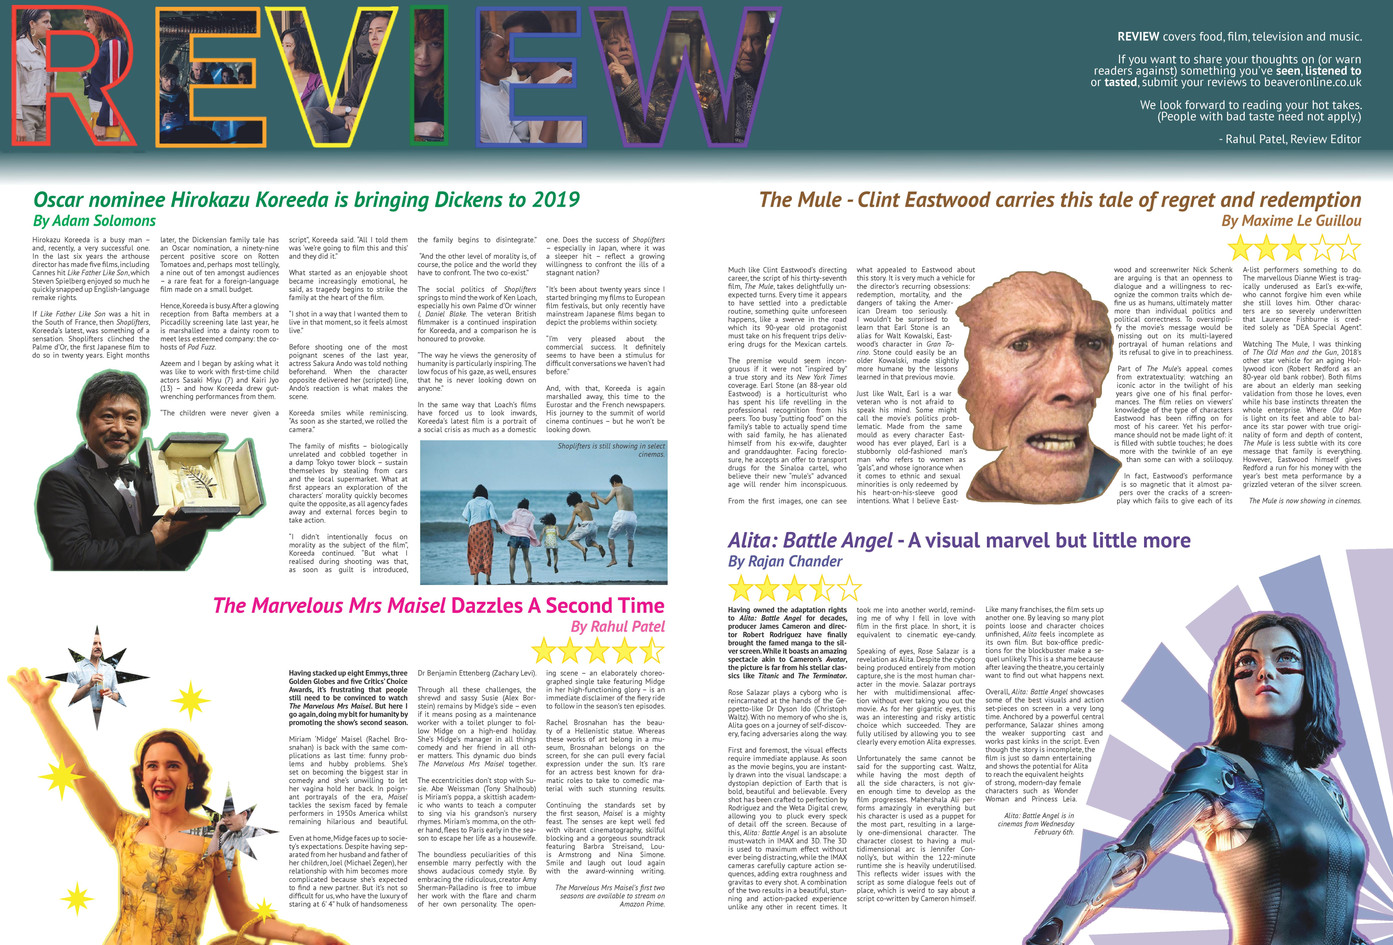 REVIEW - The Beaver Issue 898